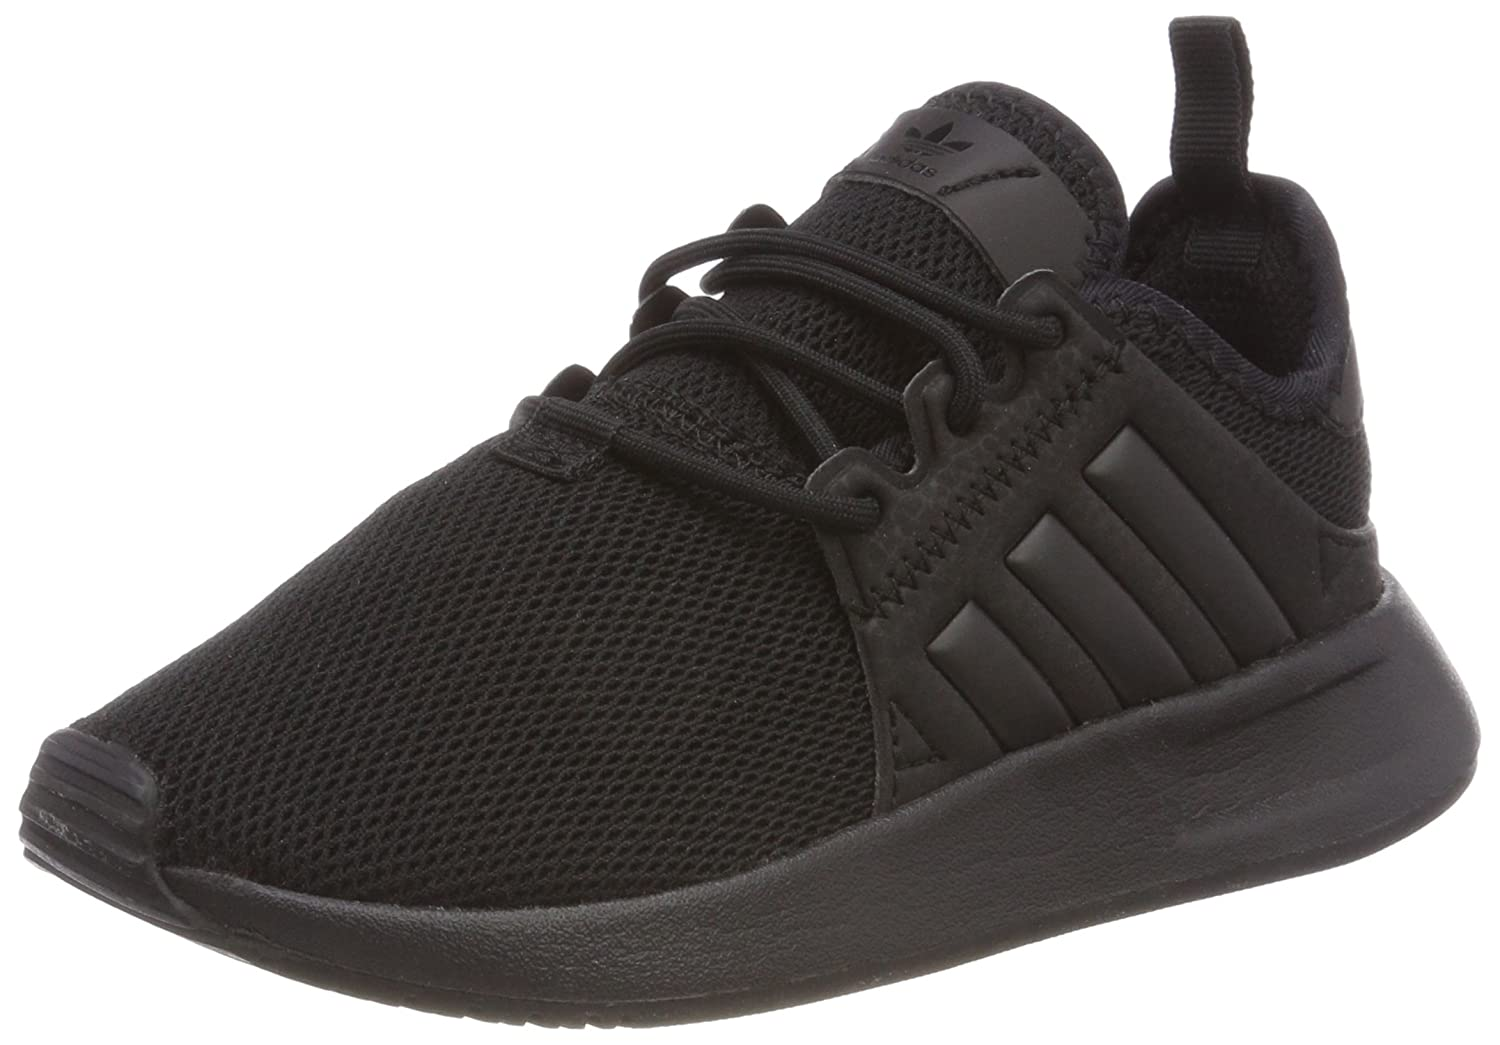 adidas Kid's X_plr C Gymnastics Shoes